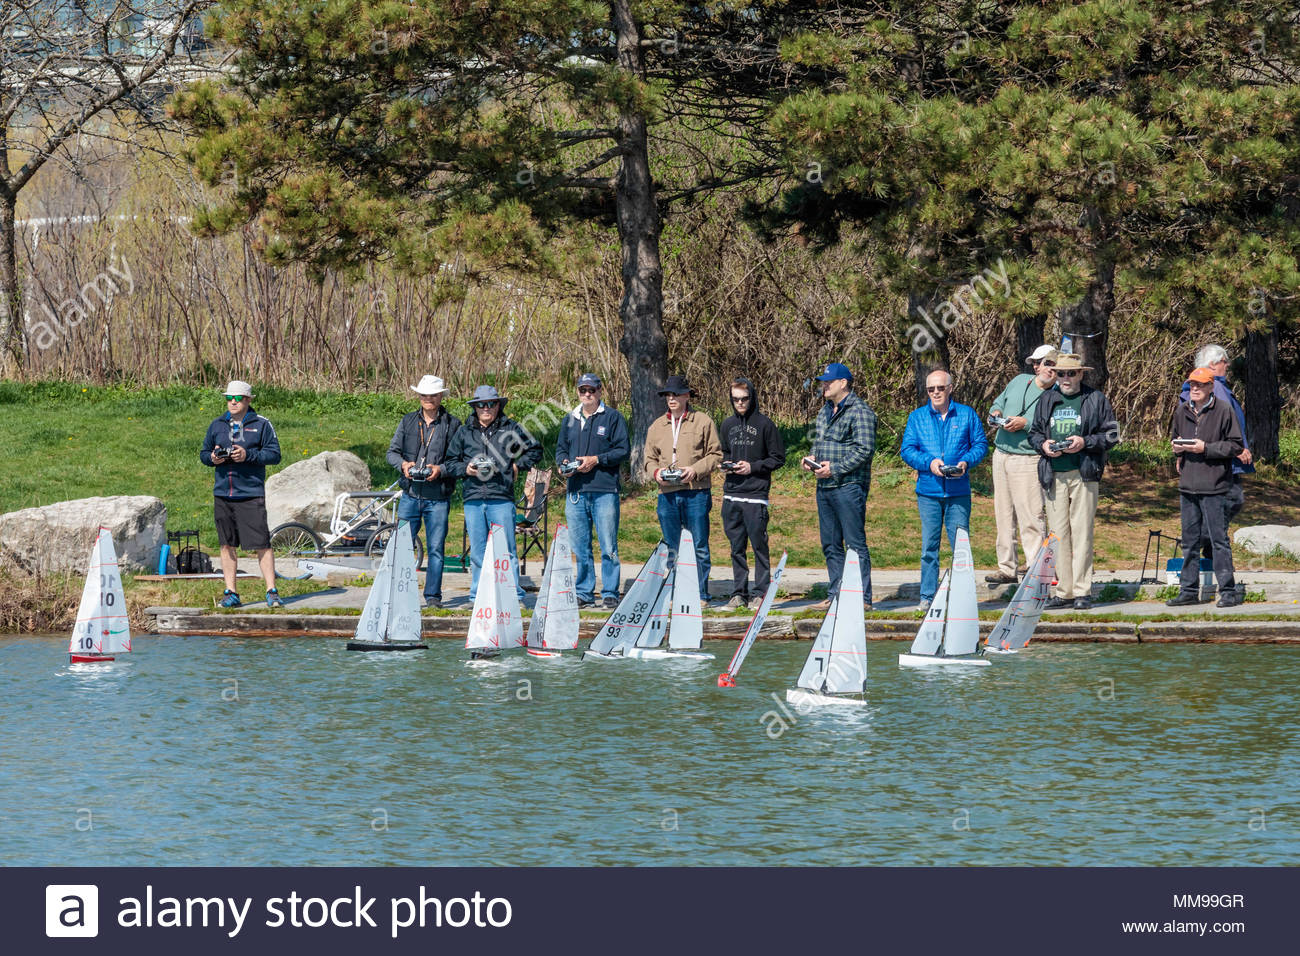 Men with radio controlled toy sailboats at Humber Park East in Toronto Ontario Canada - Stock Image